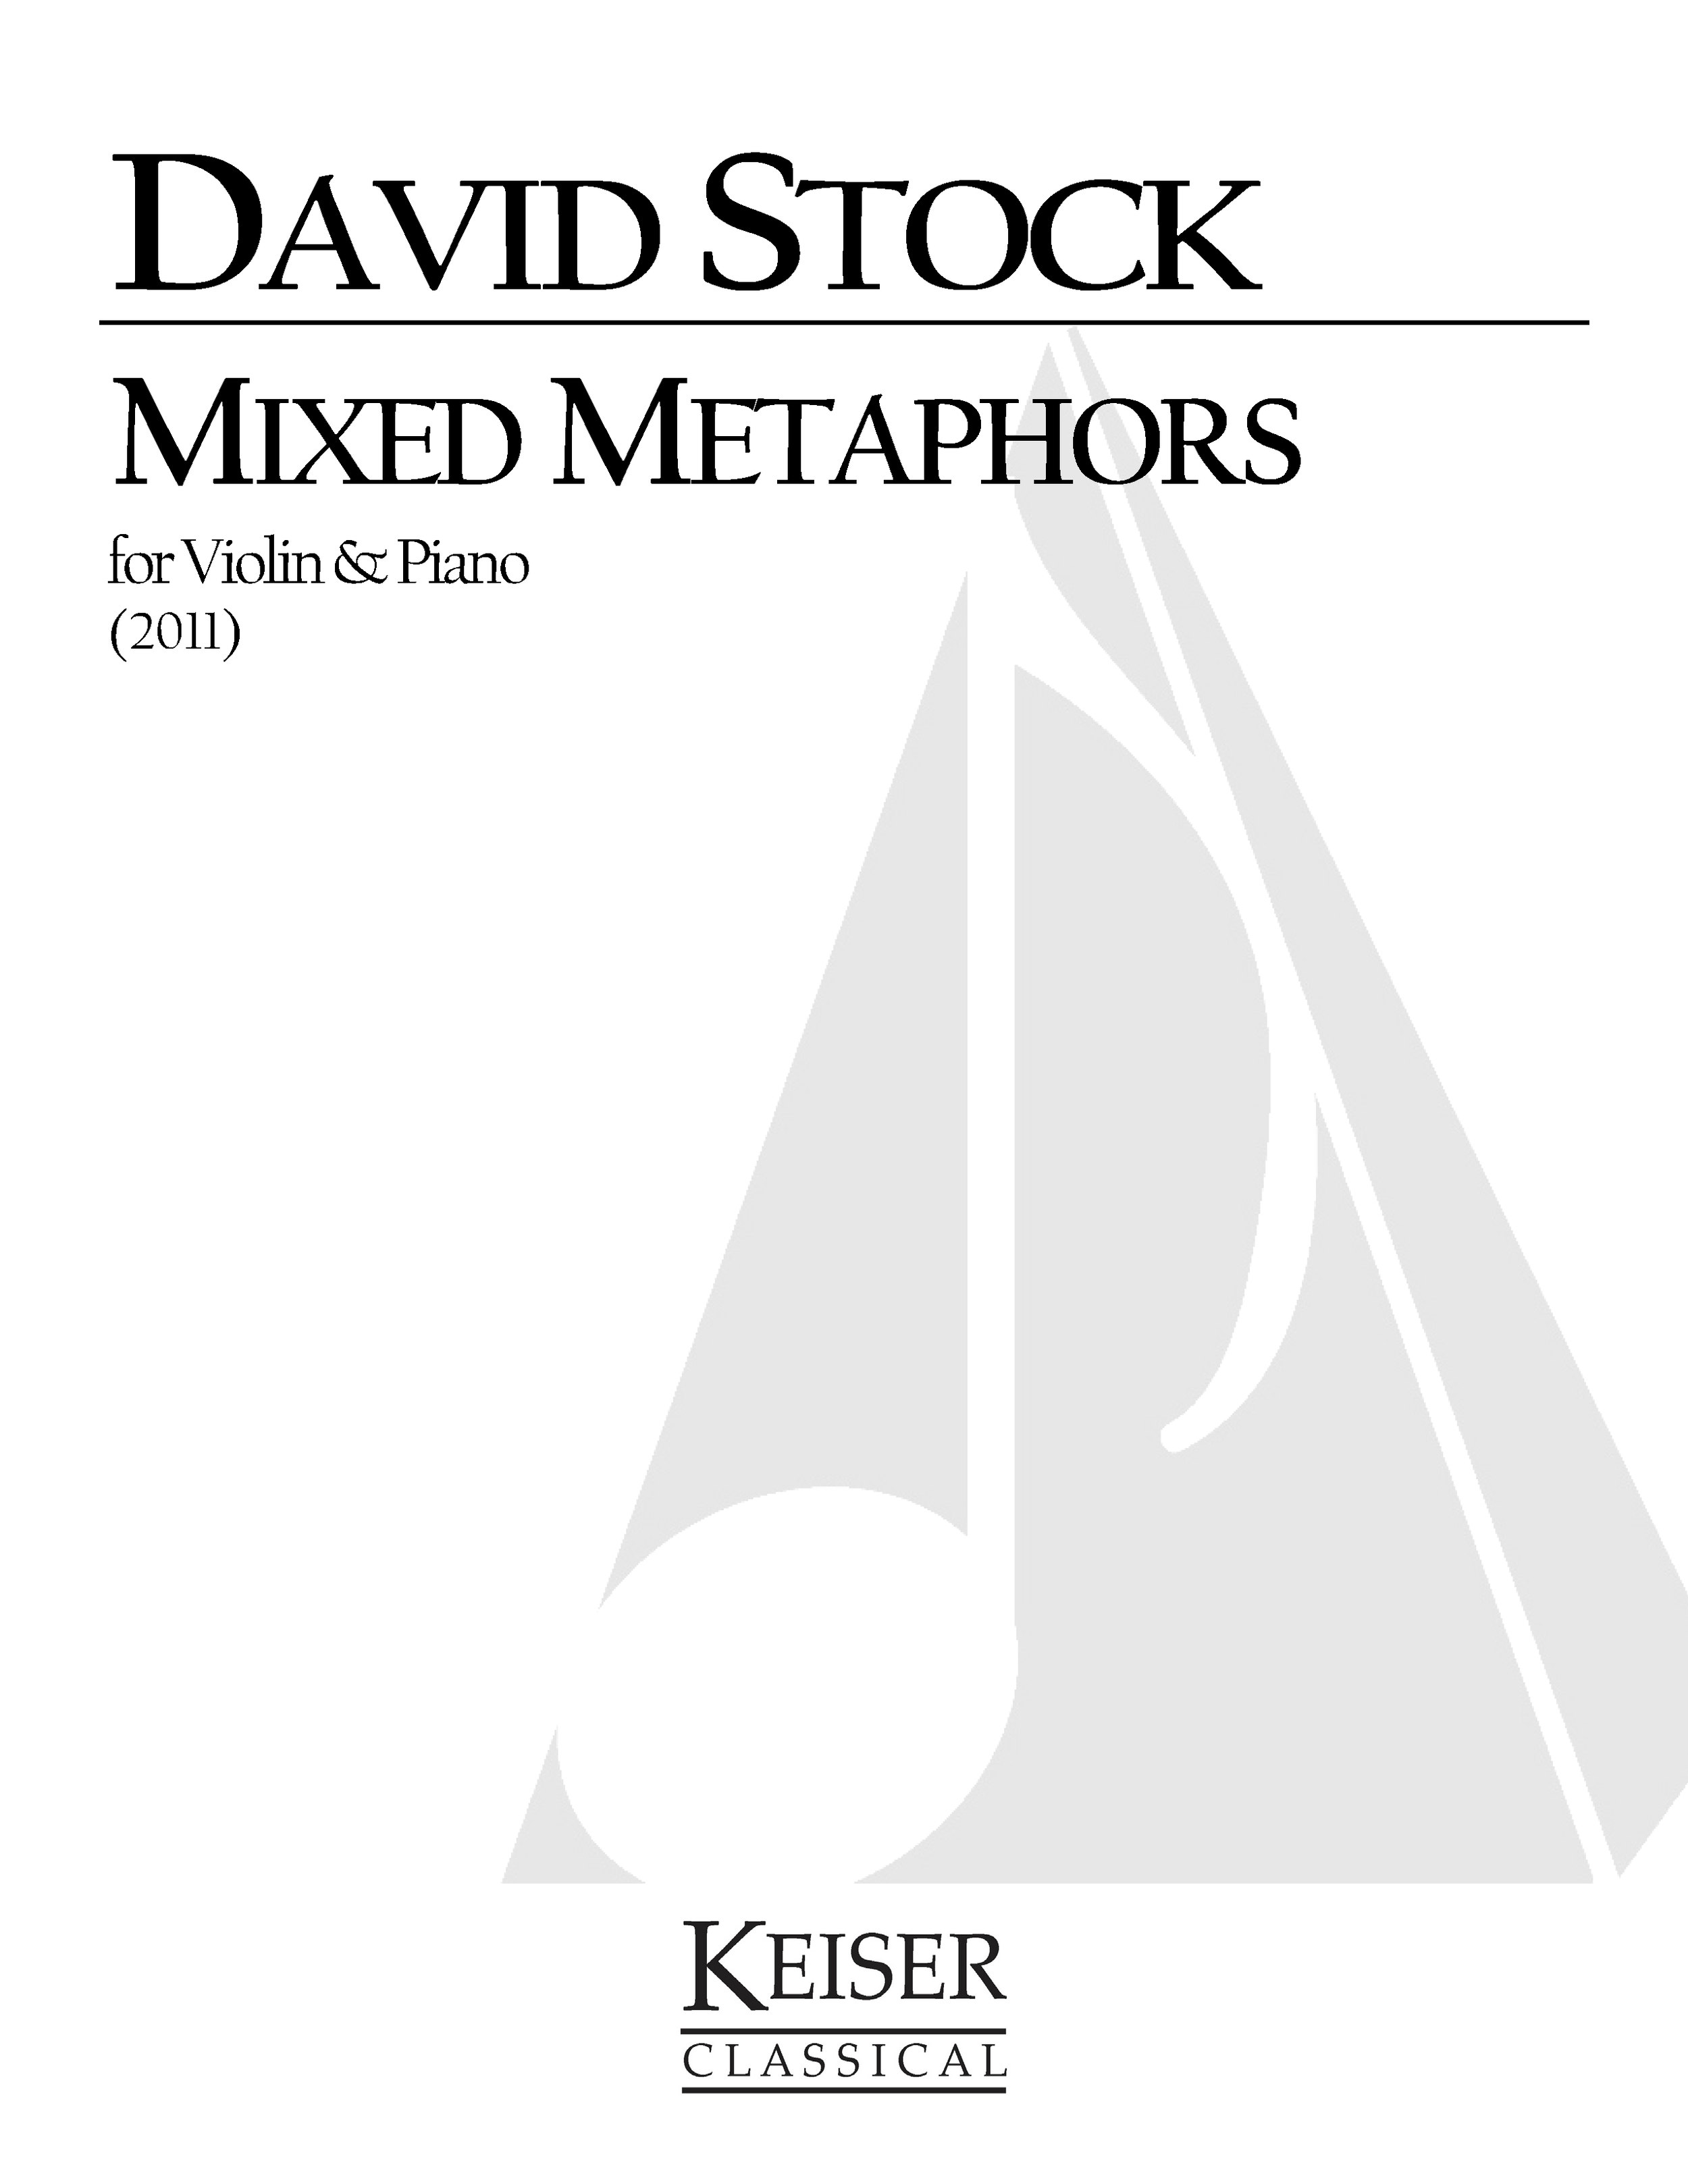 Mixed Metaphors (2011) - Violin, PianoRent/Buy: Keiser Music